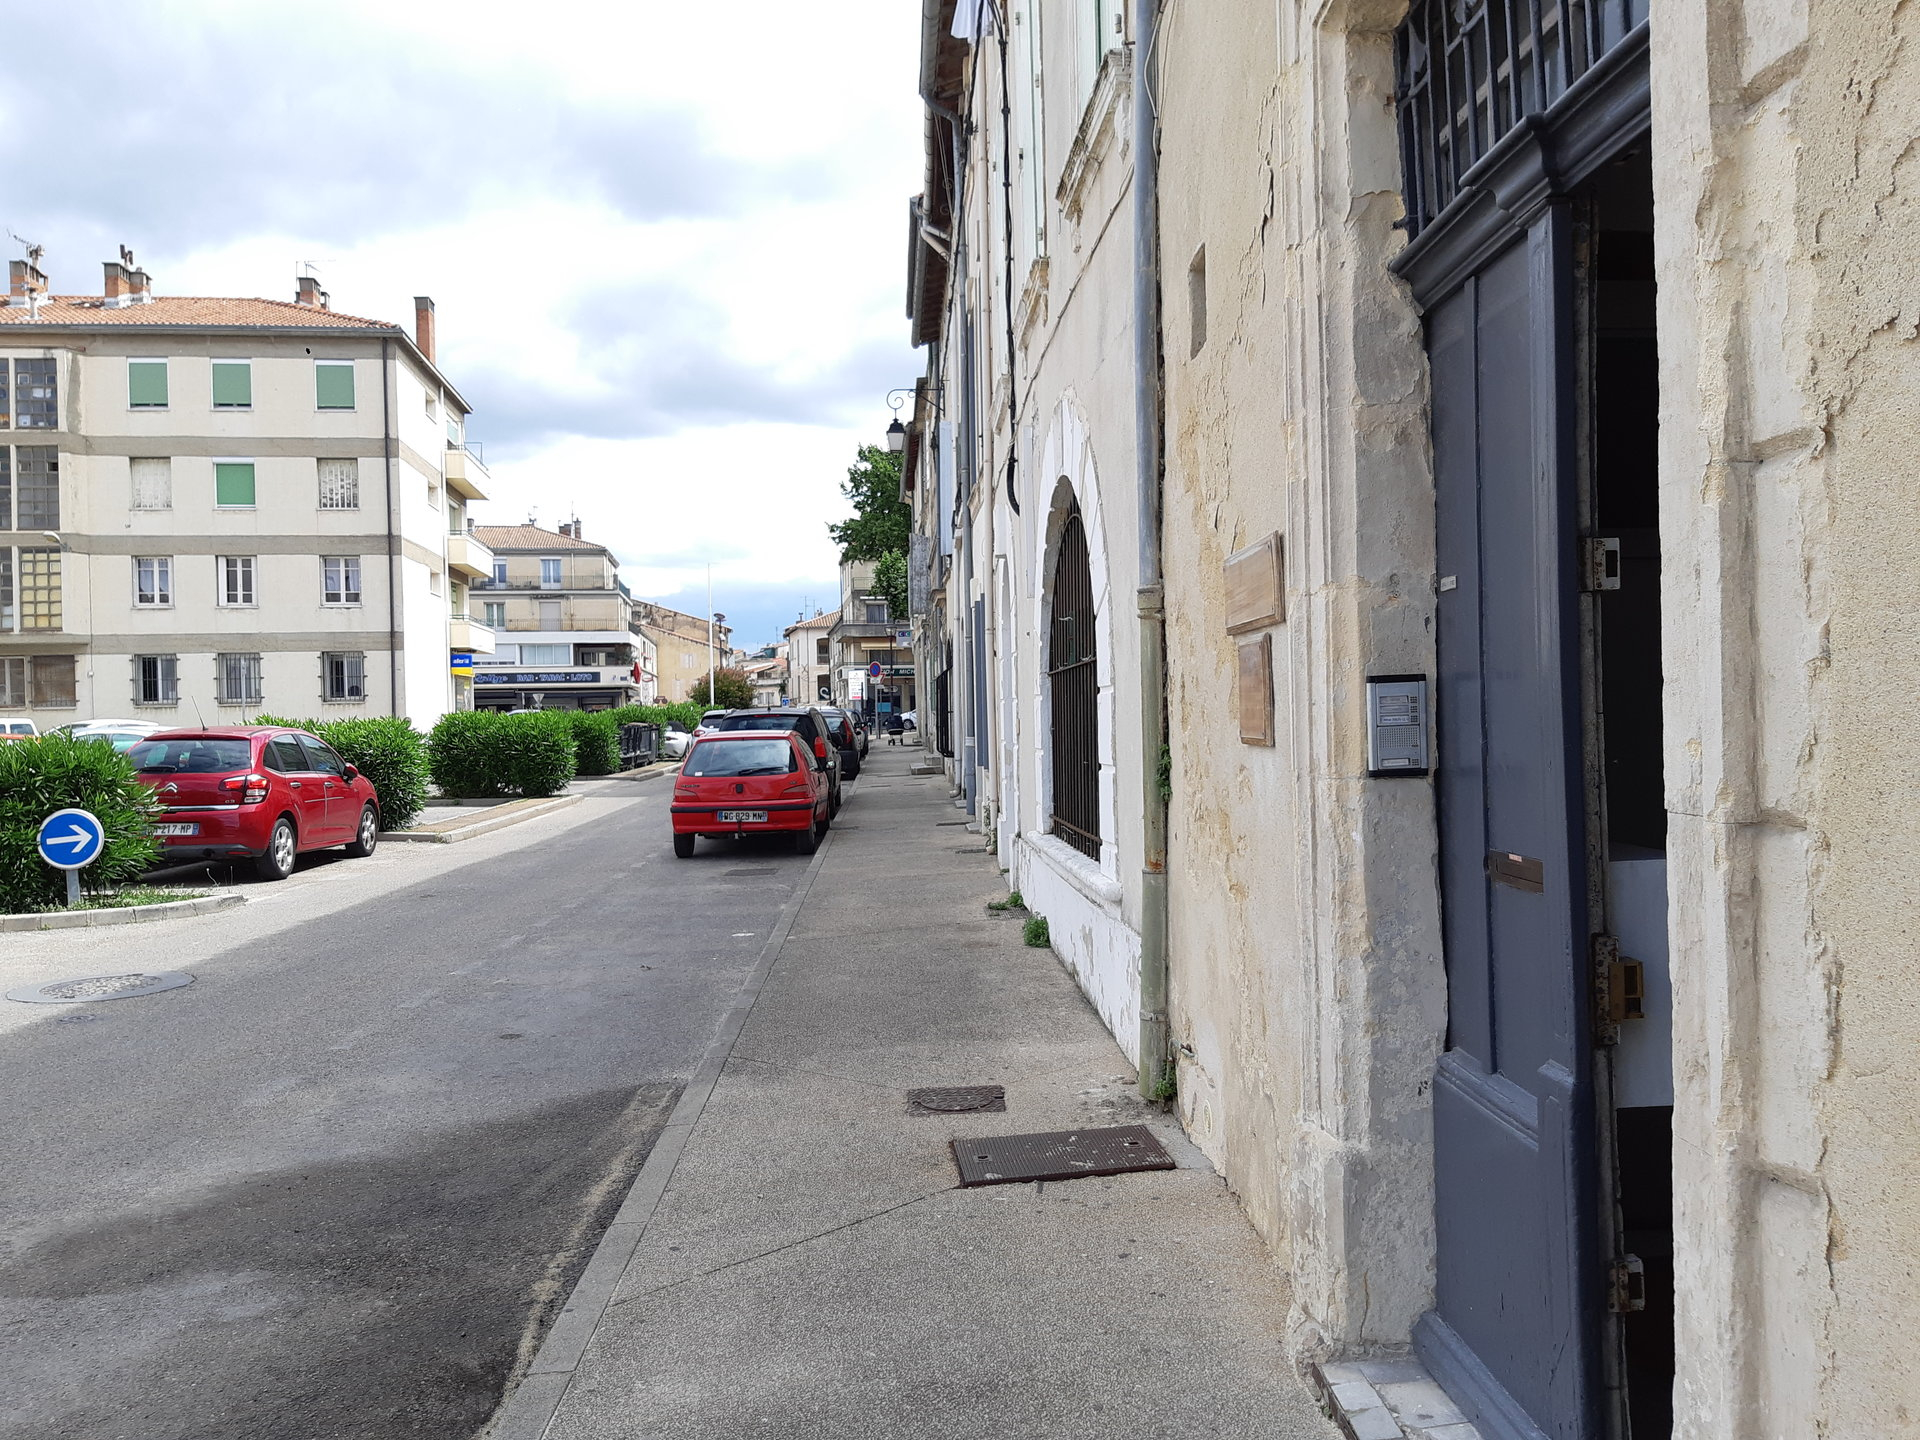 Location Fonds de commerce TARASCON surface habitable de 50 m²